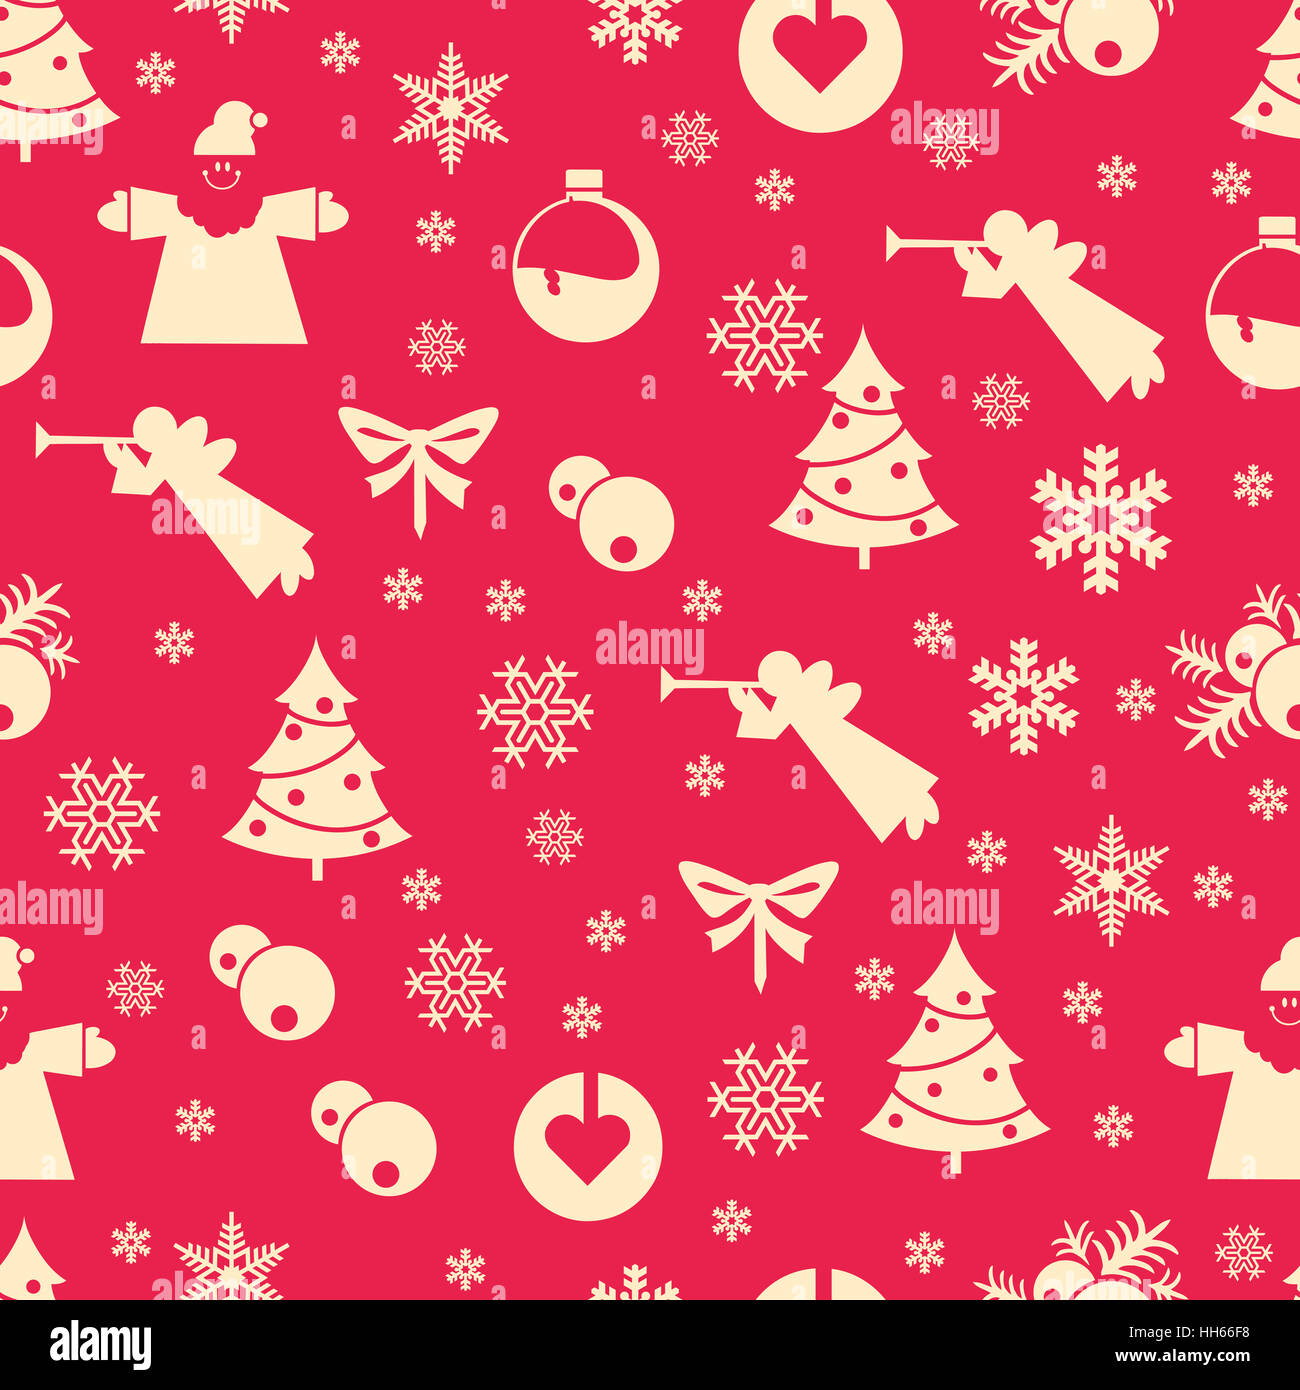 Christmas seamless pastel retro vector patterns tiling. Endless texture can be used for printing onto fabric and - Stock Image